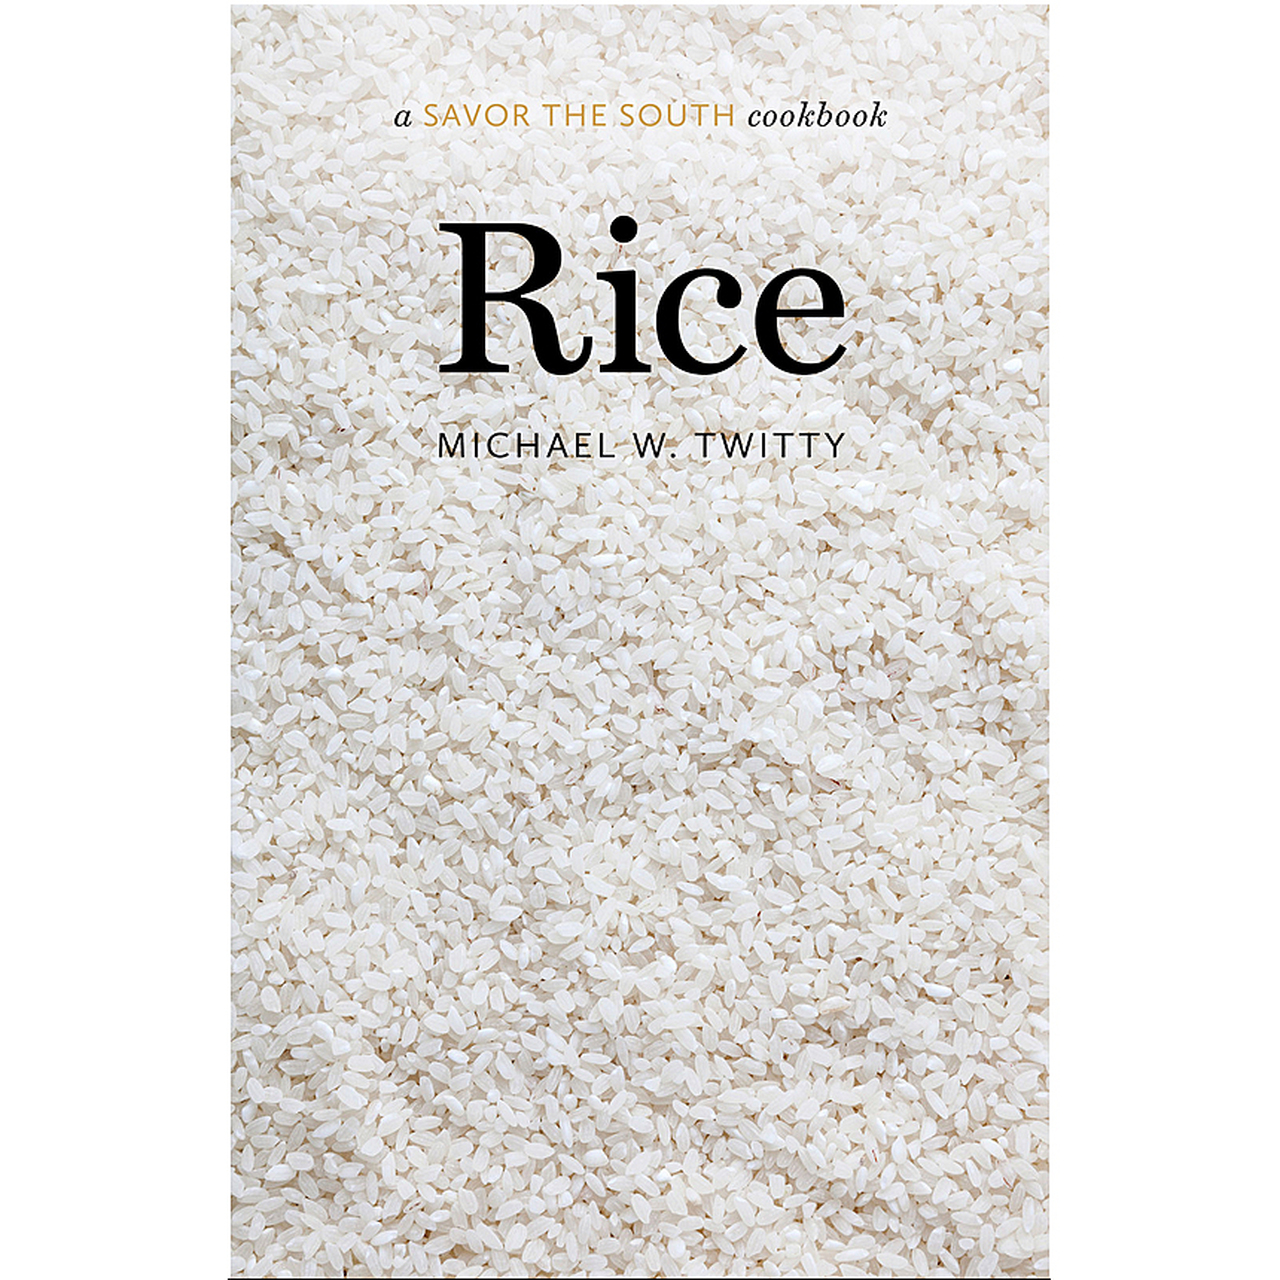 Rice: A Savor of the South Cookbook